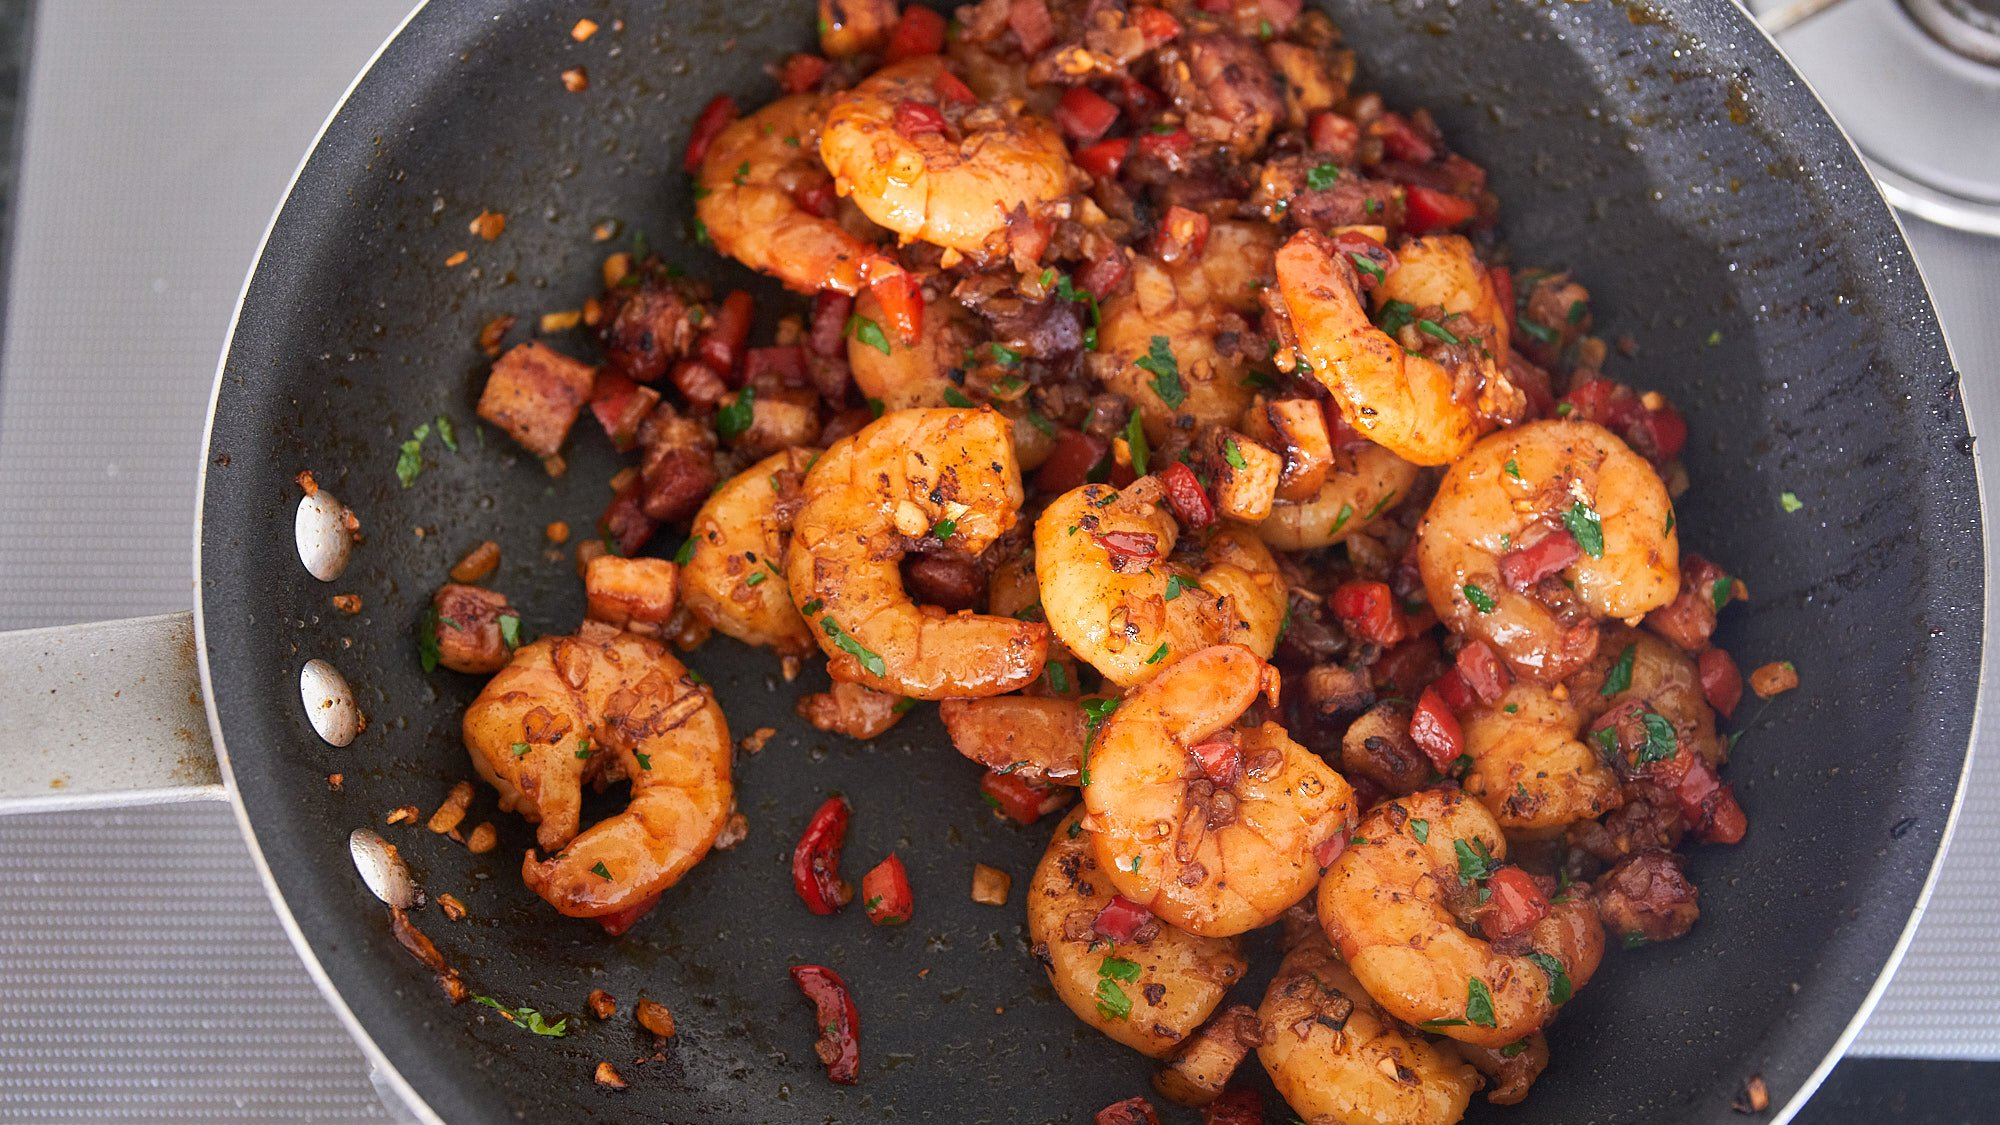 Finish the shrimp with a splash of lemon juice and sprinkle of parsley.